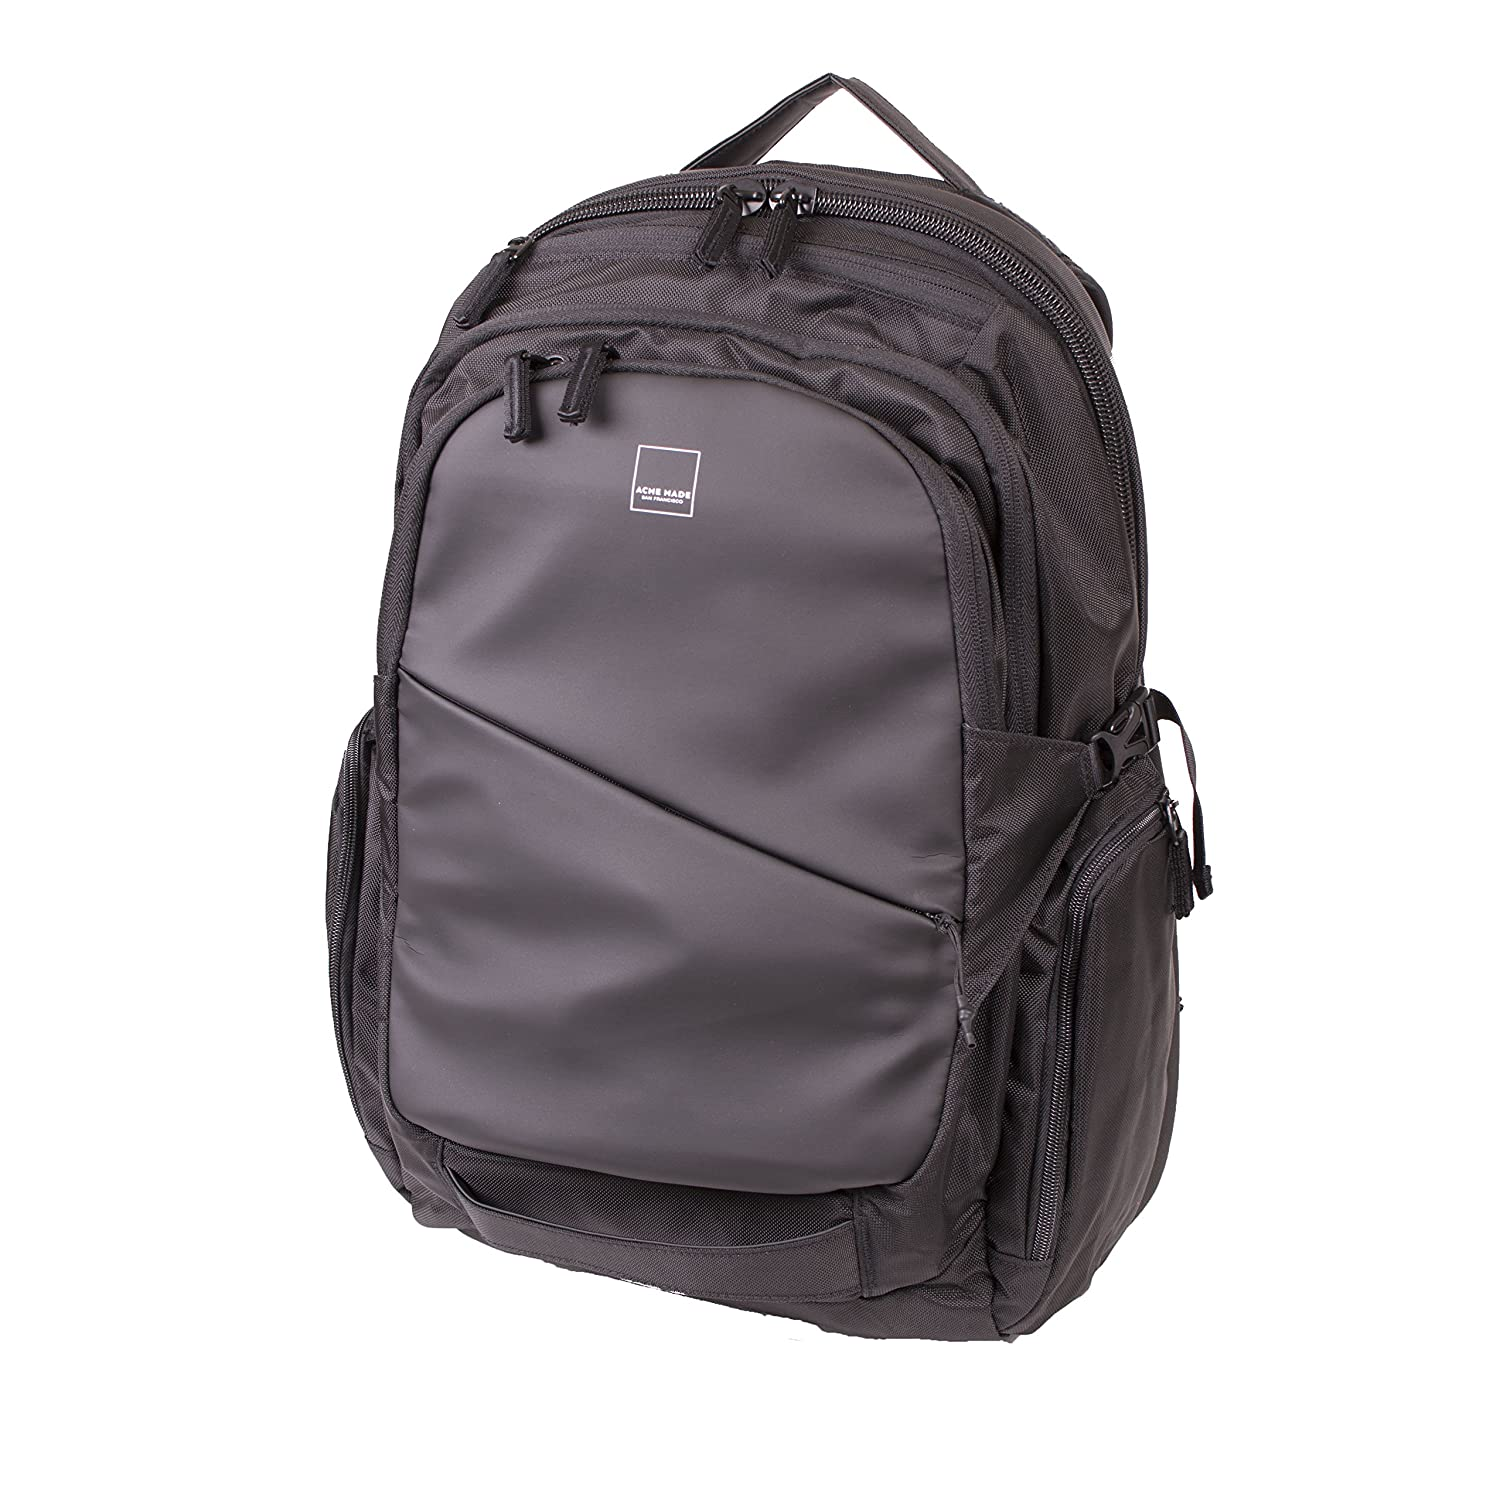 Acme Made Union Street Sturdy Traveler Backpack, Black (AM20711) 4EProject Inc.